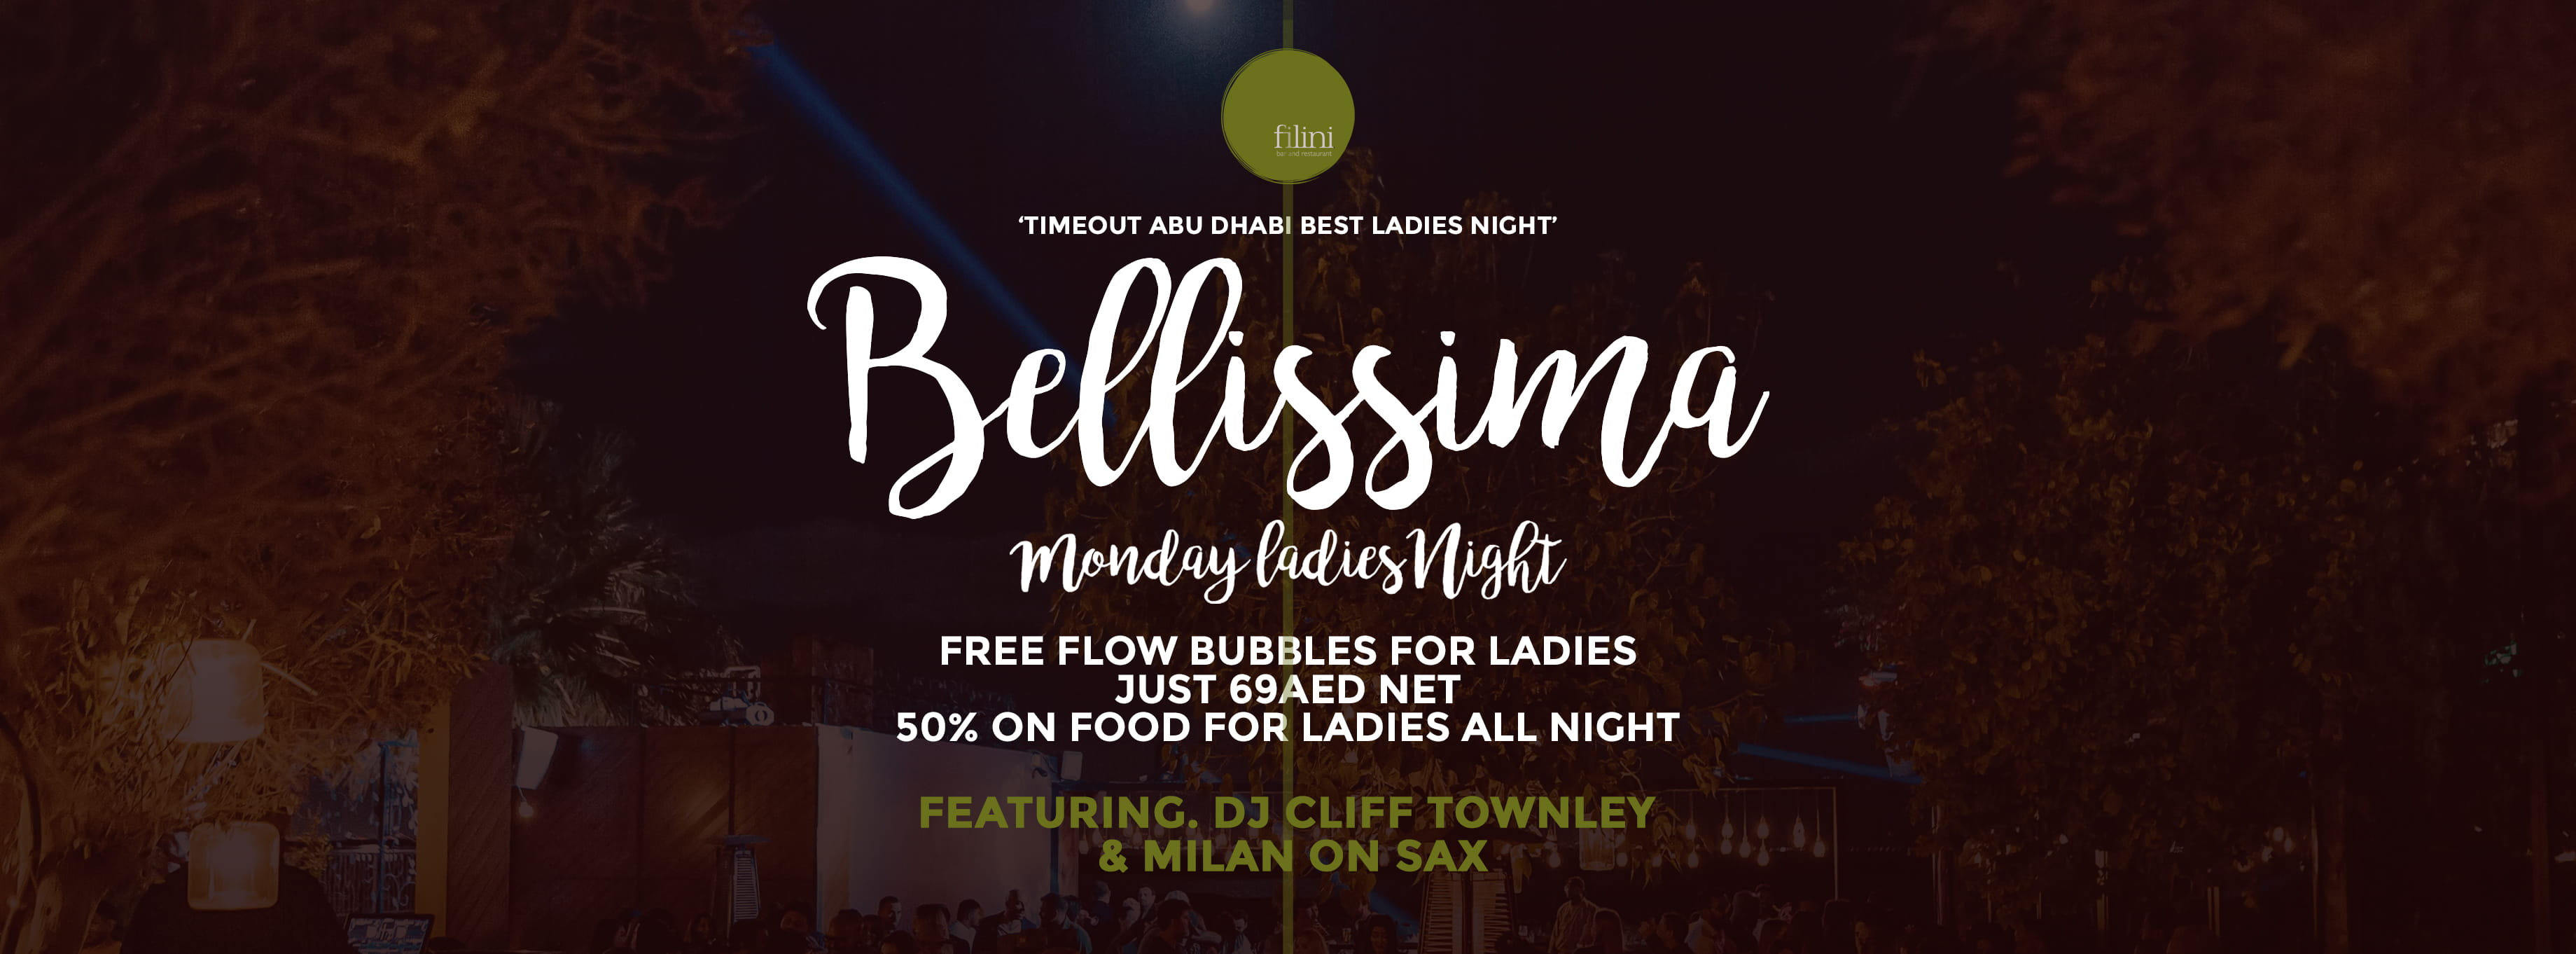 Bellissima Ladies Night @ Filini Gardens